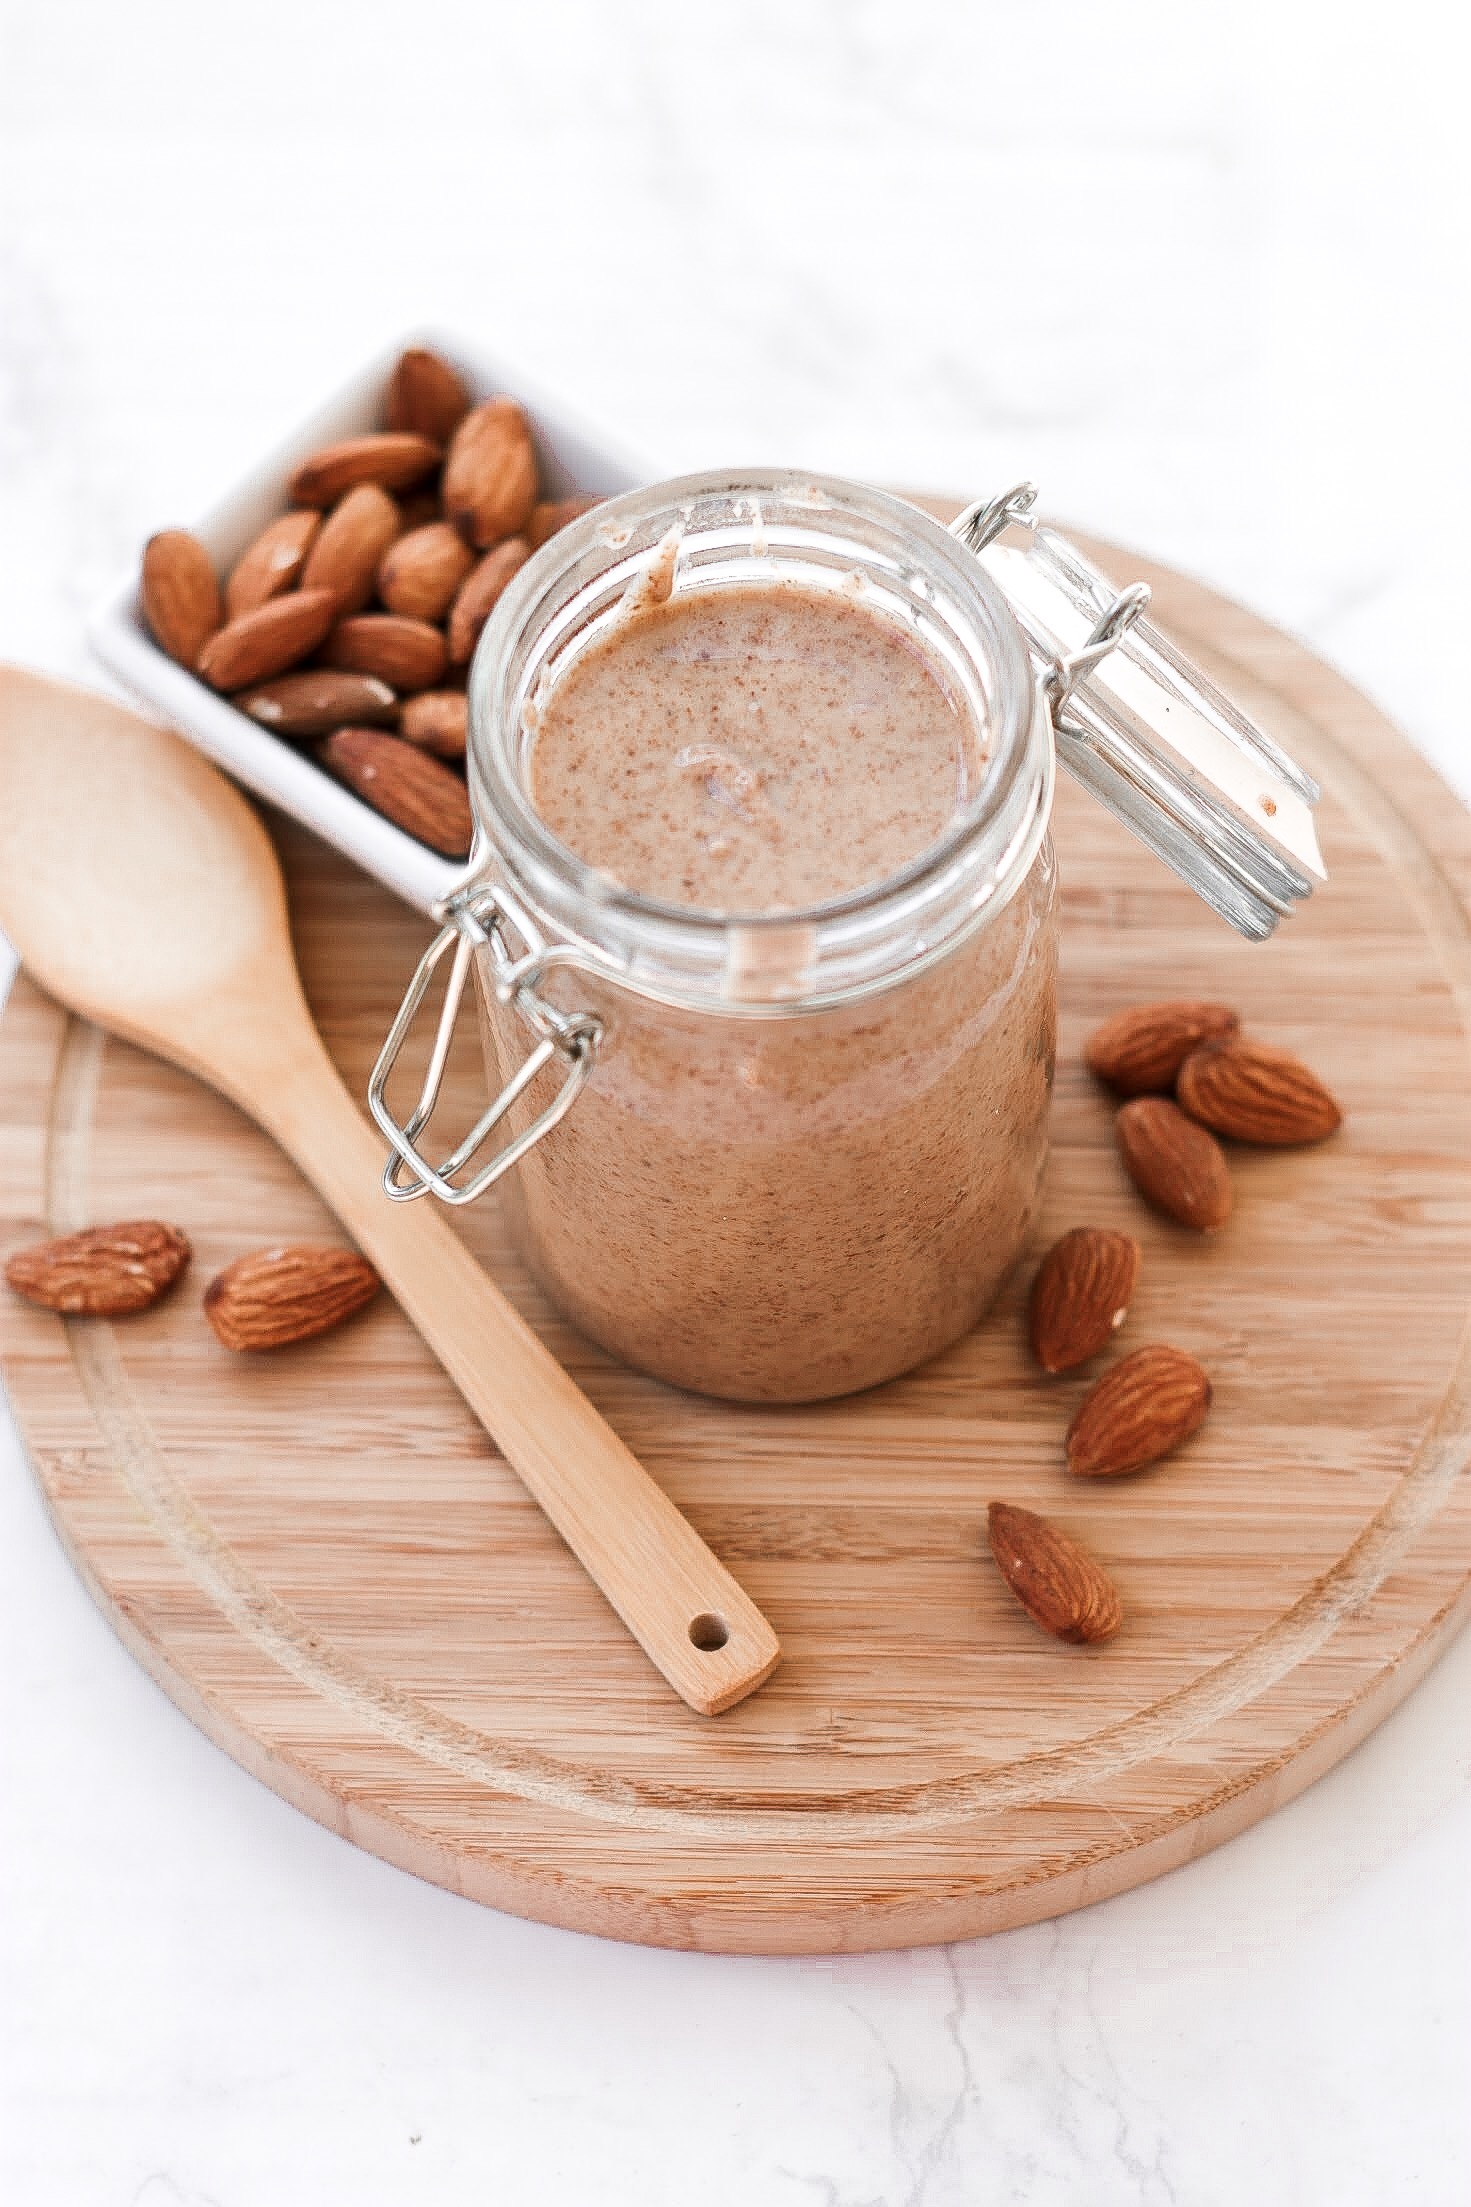 Recipe: How to Make Homemade Almond Butter